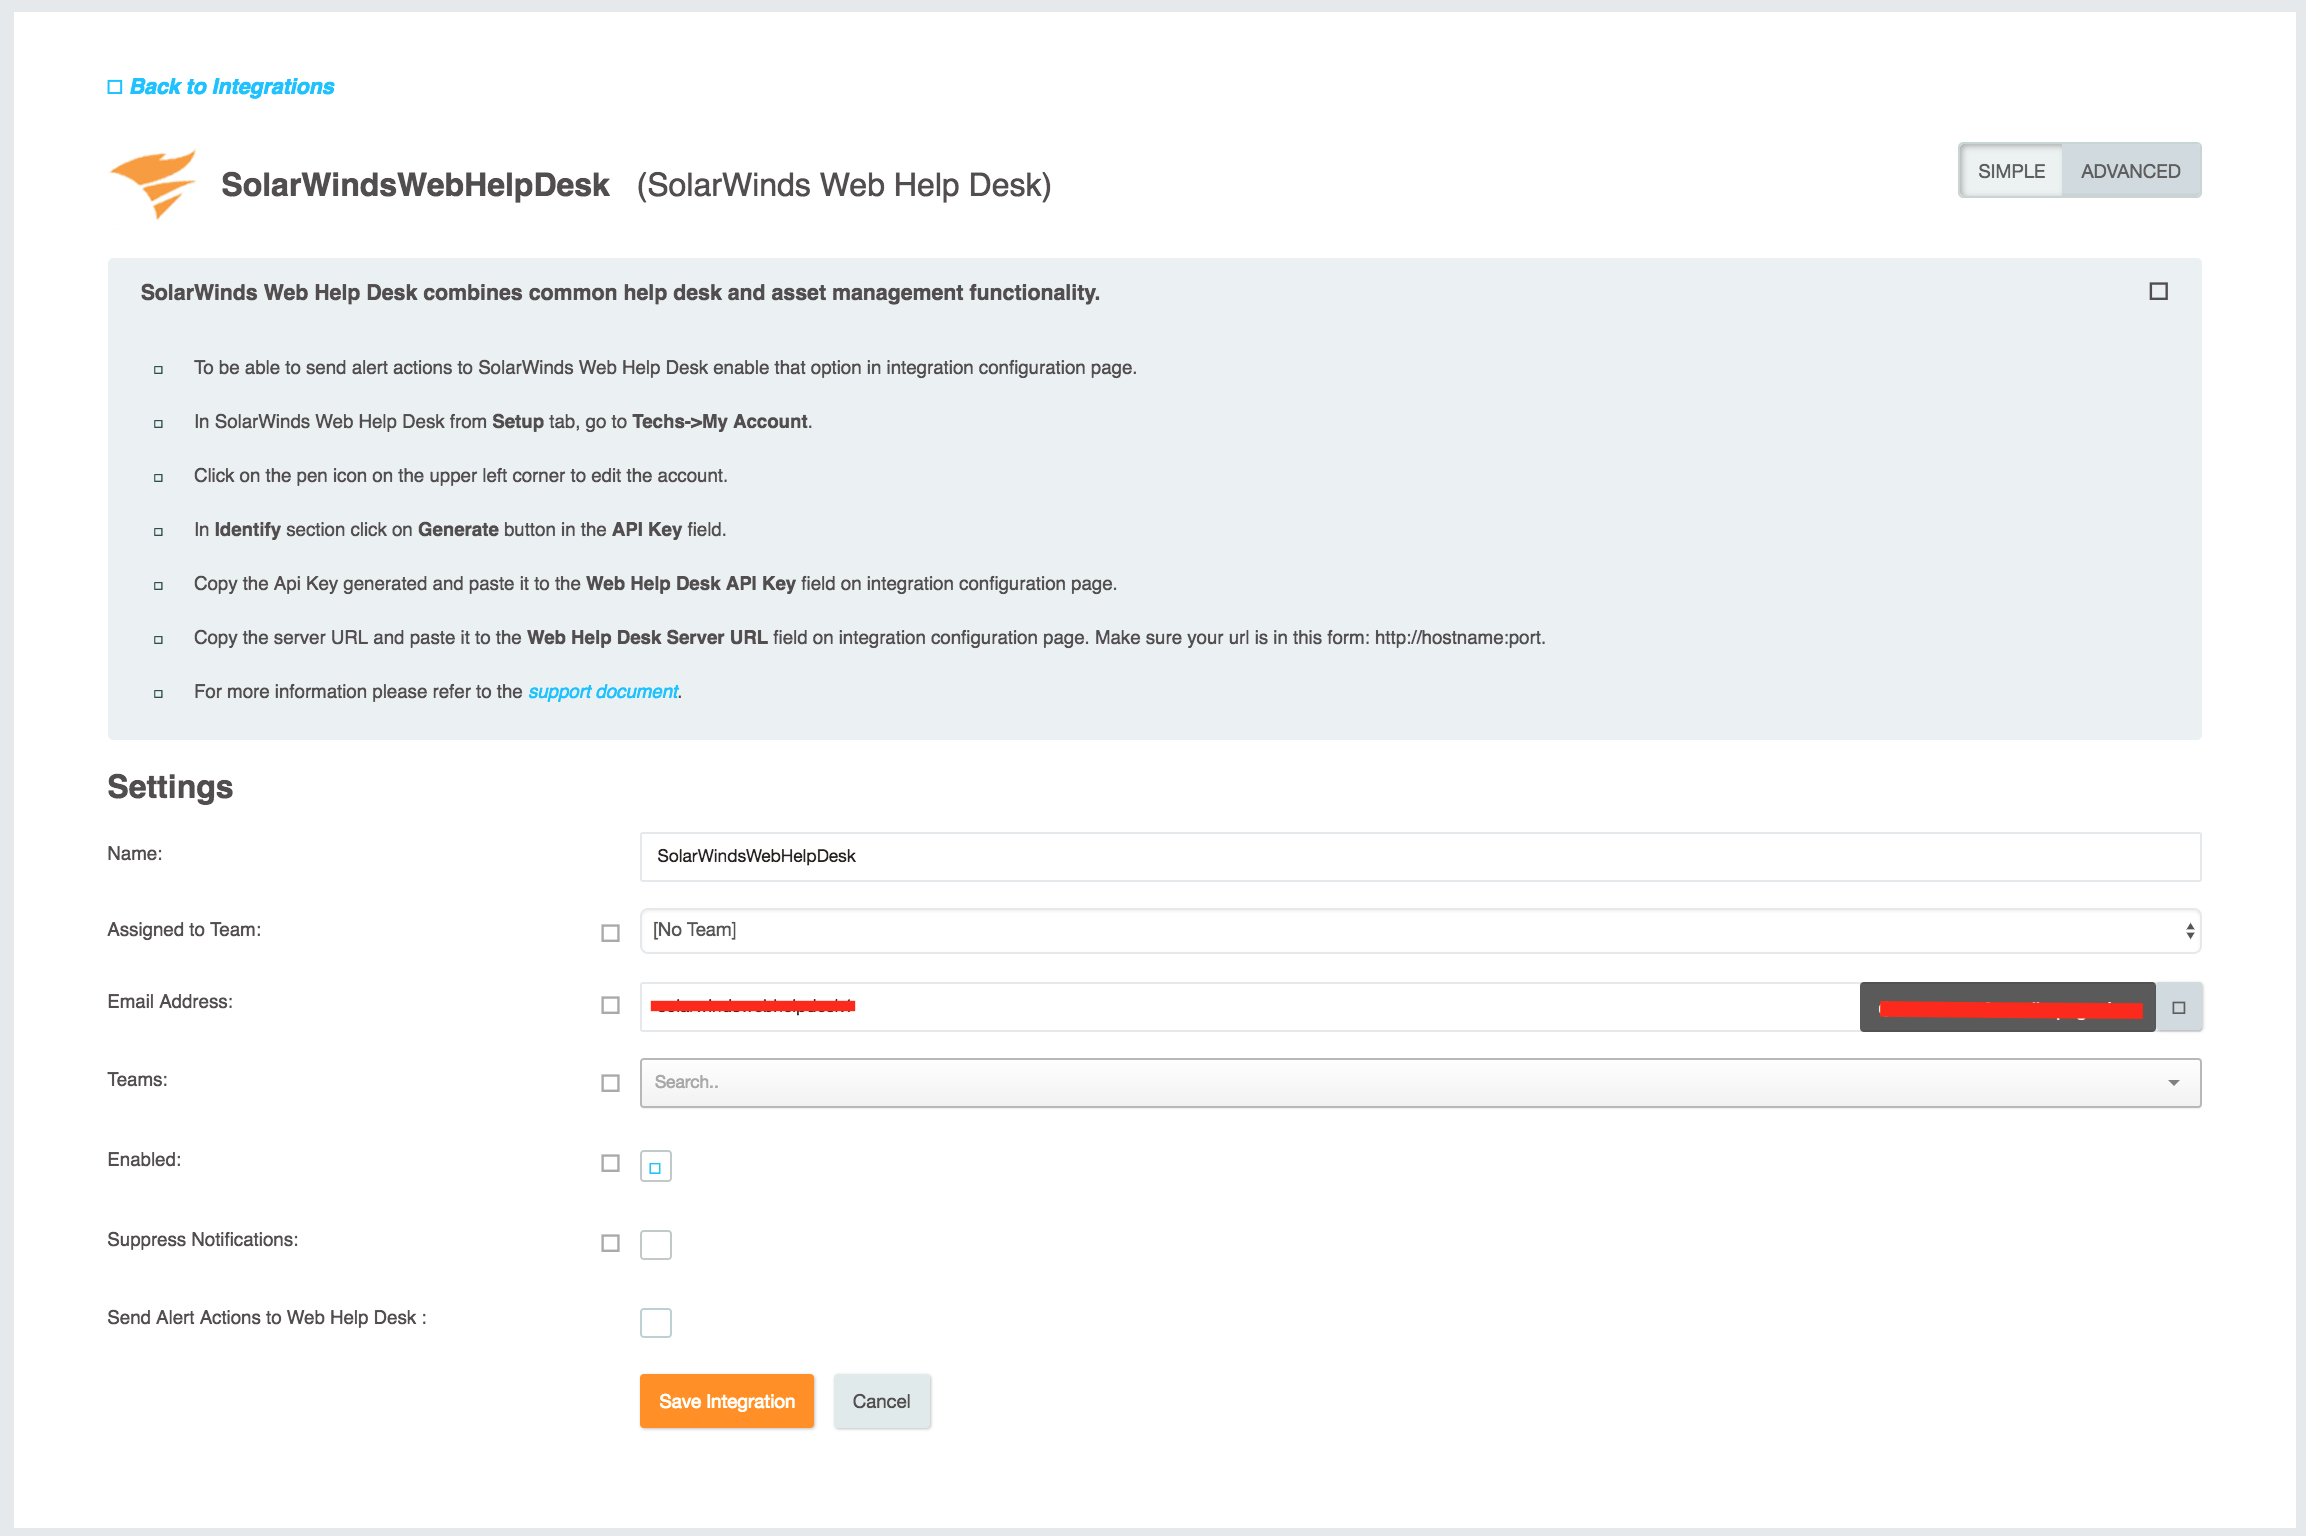 Solarwinds Web Help Desk Integration